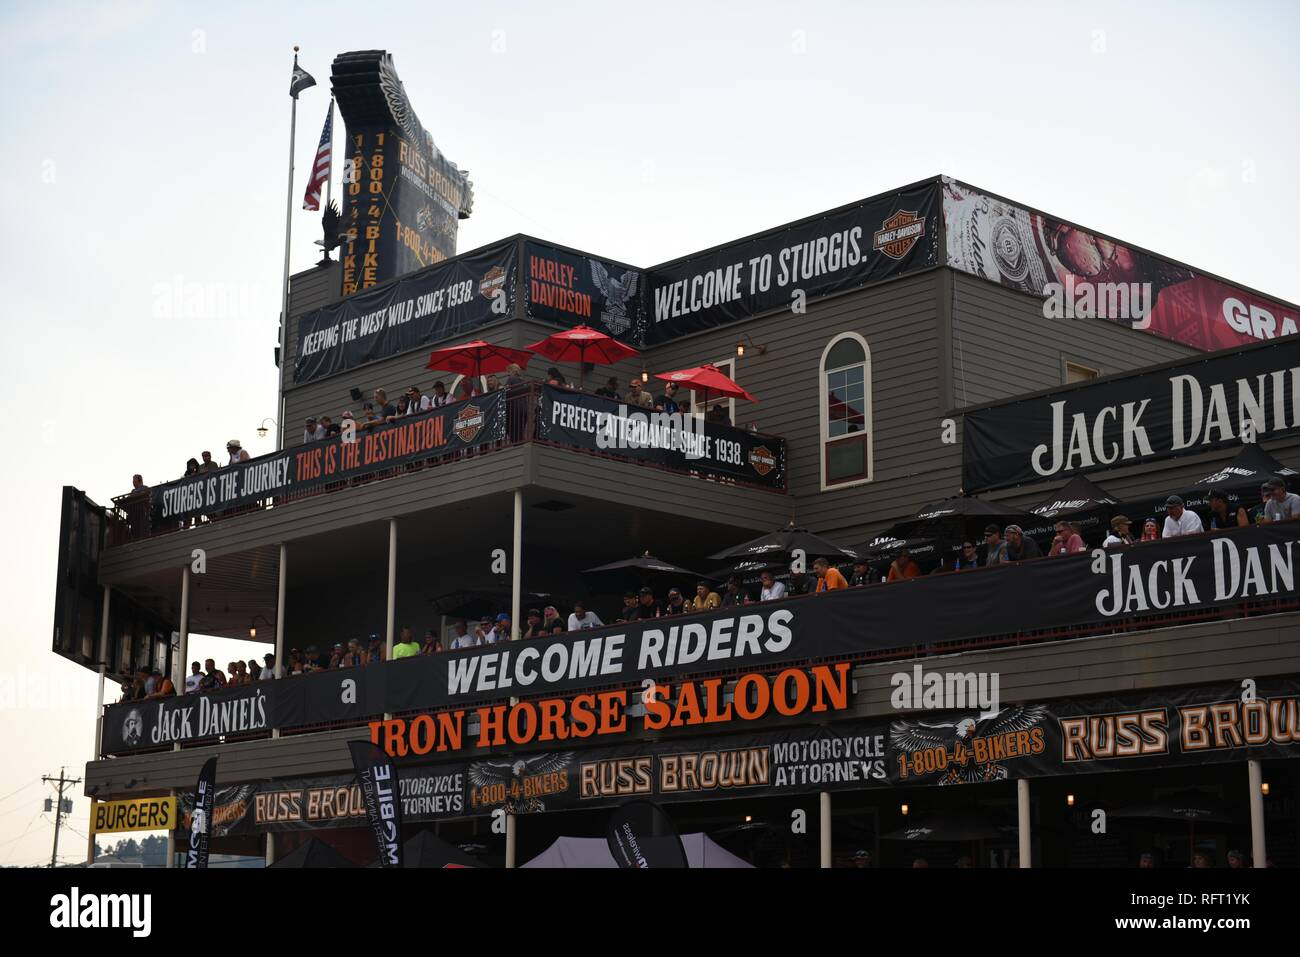 Motorcycle Rally Stock Photos & Motorcycle Rally Stock Images - Alamy